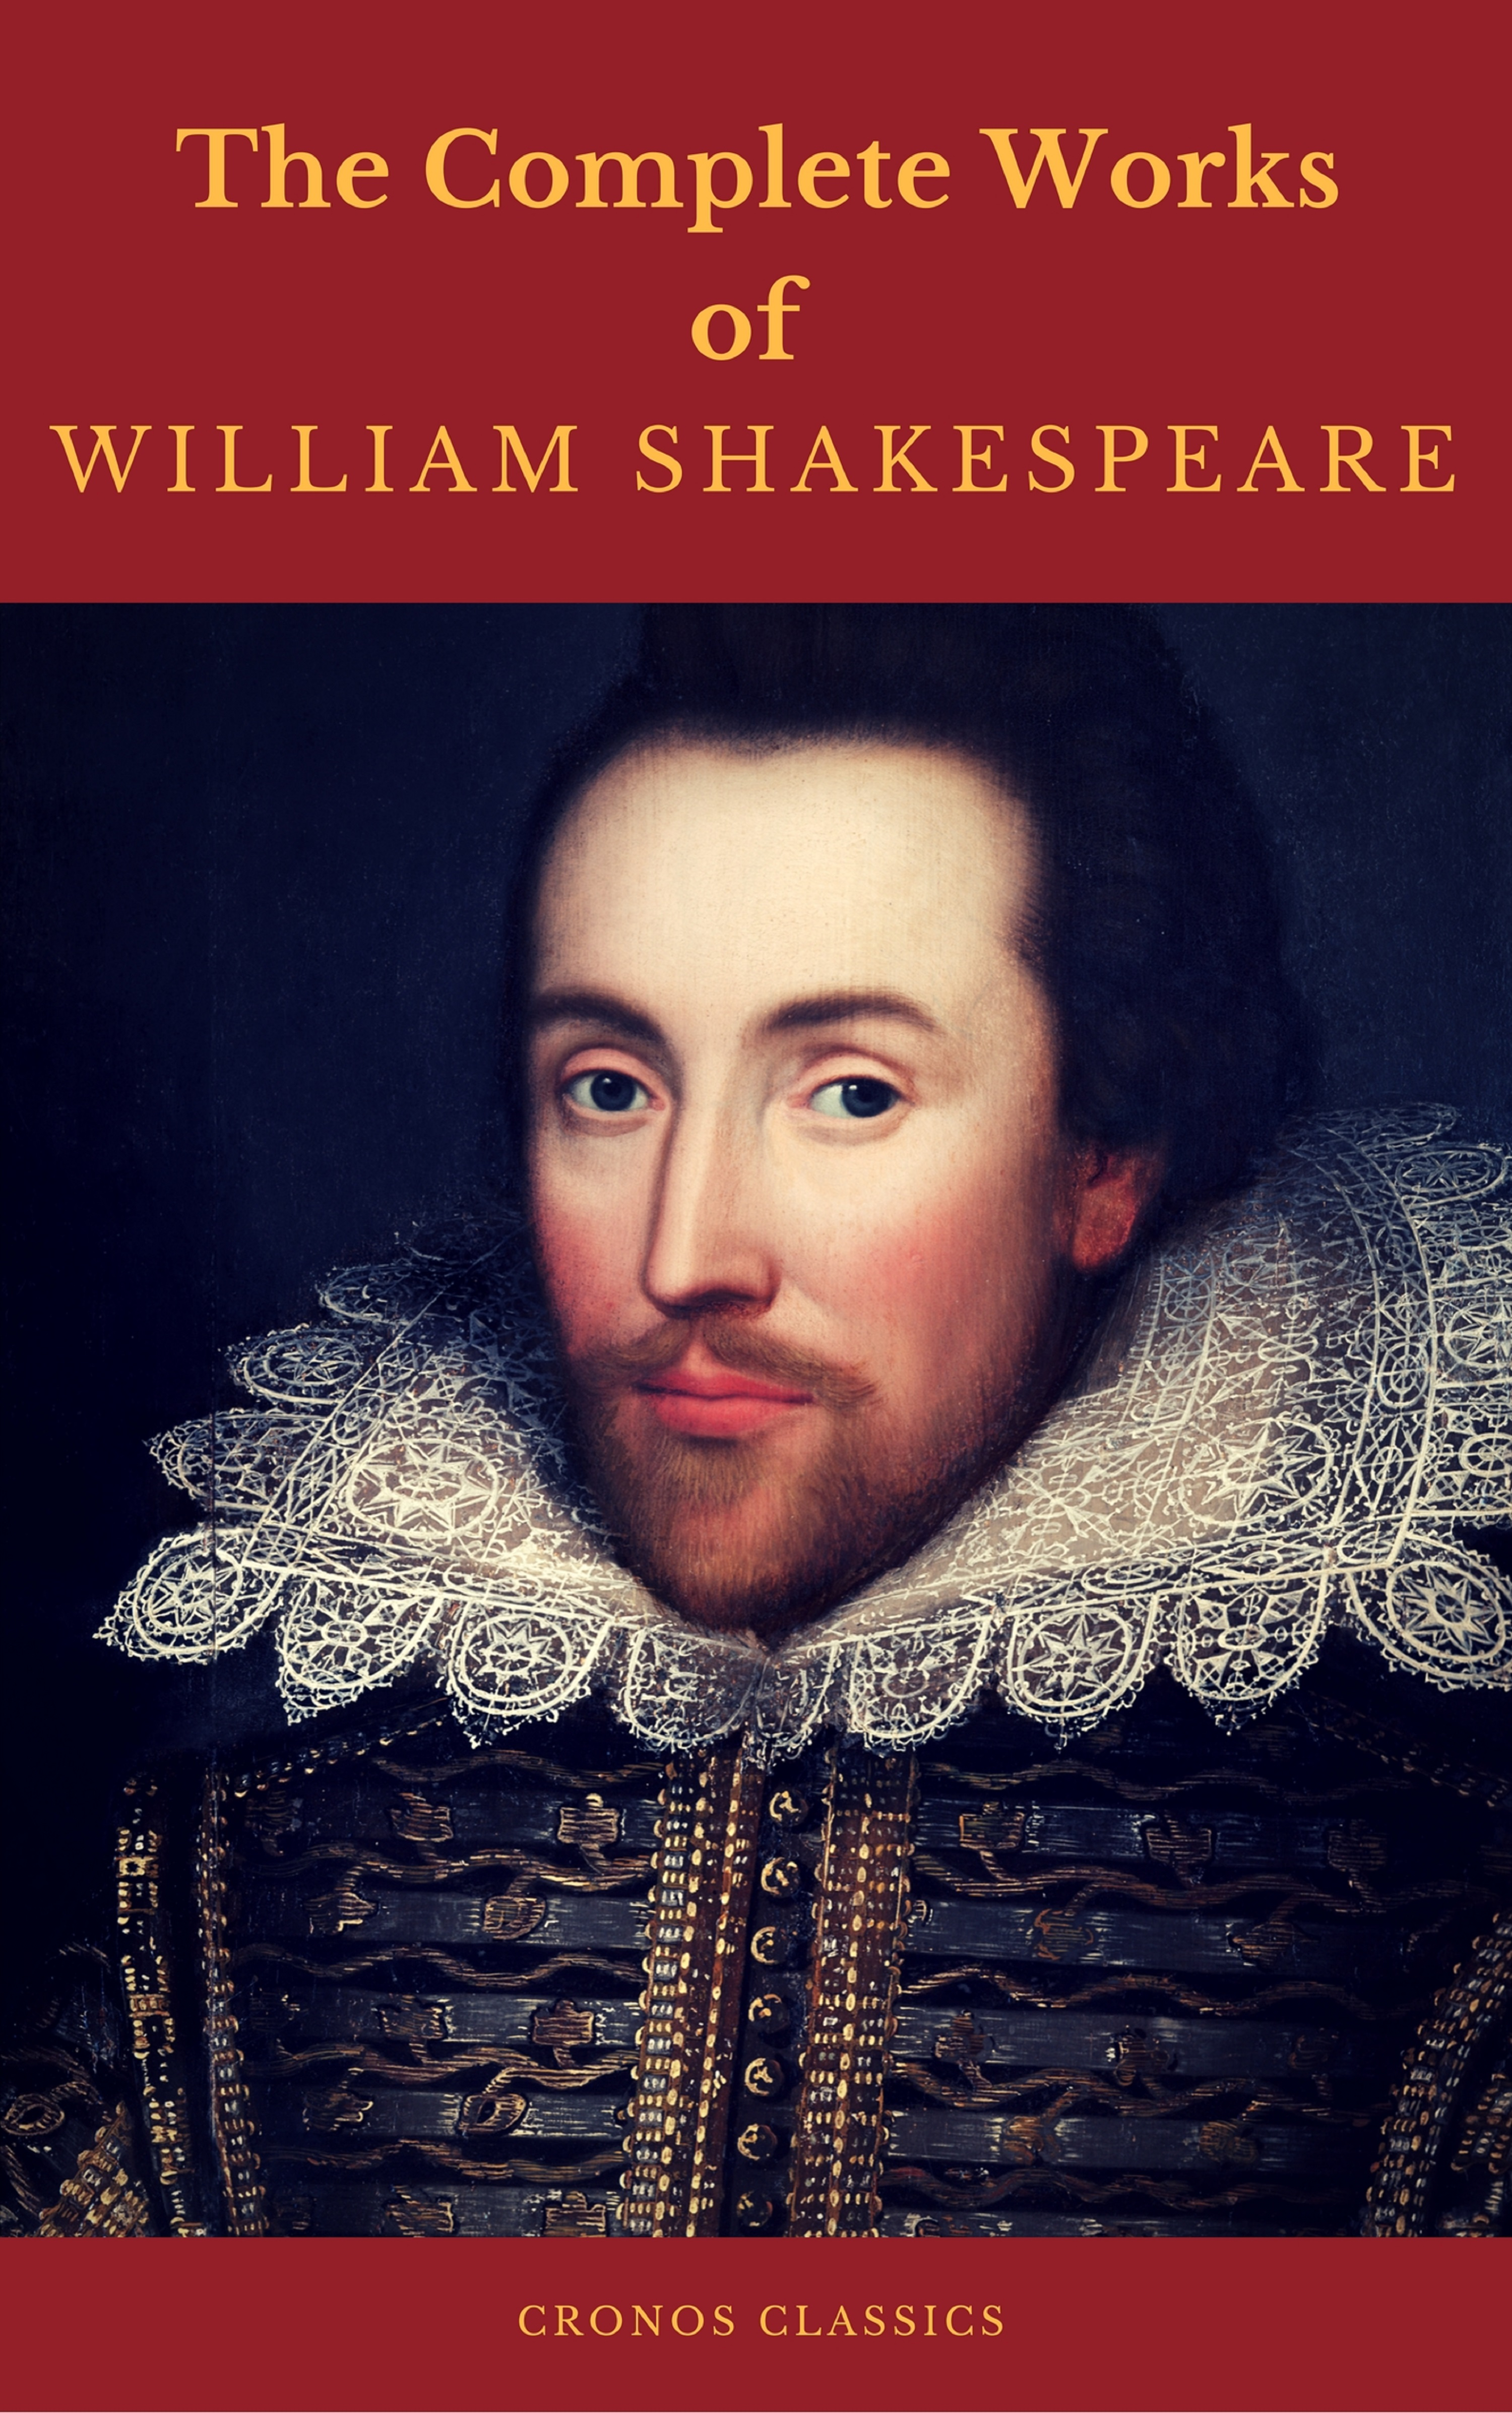 the complete works of william shakespeare cronos classics